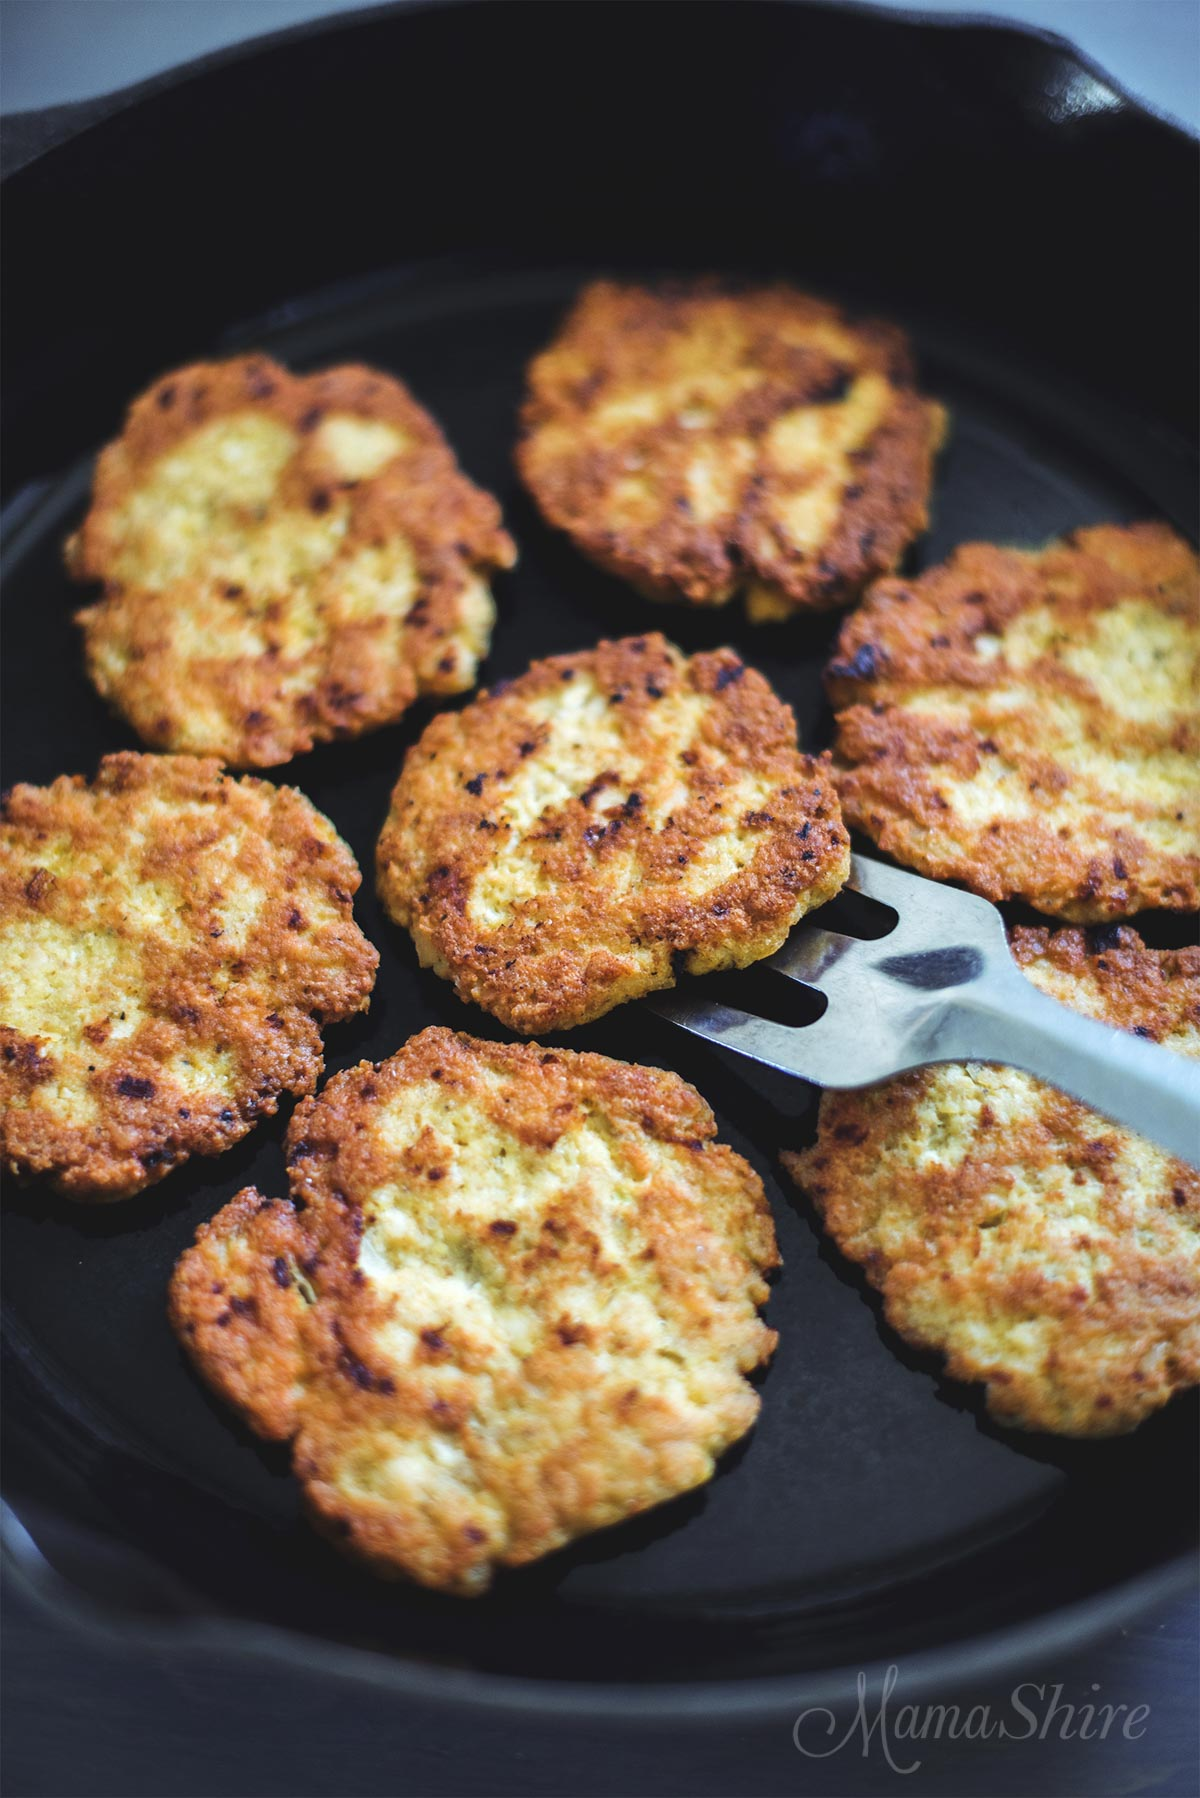 Several chicken patties in an iron skillet that were made with a homemade chicken patties recipe that is gluten-free.